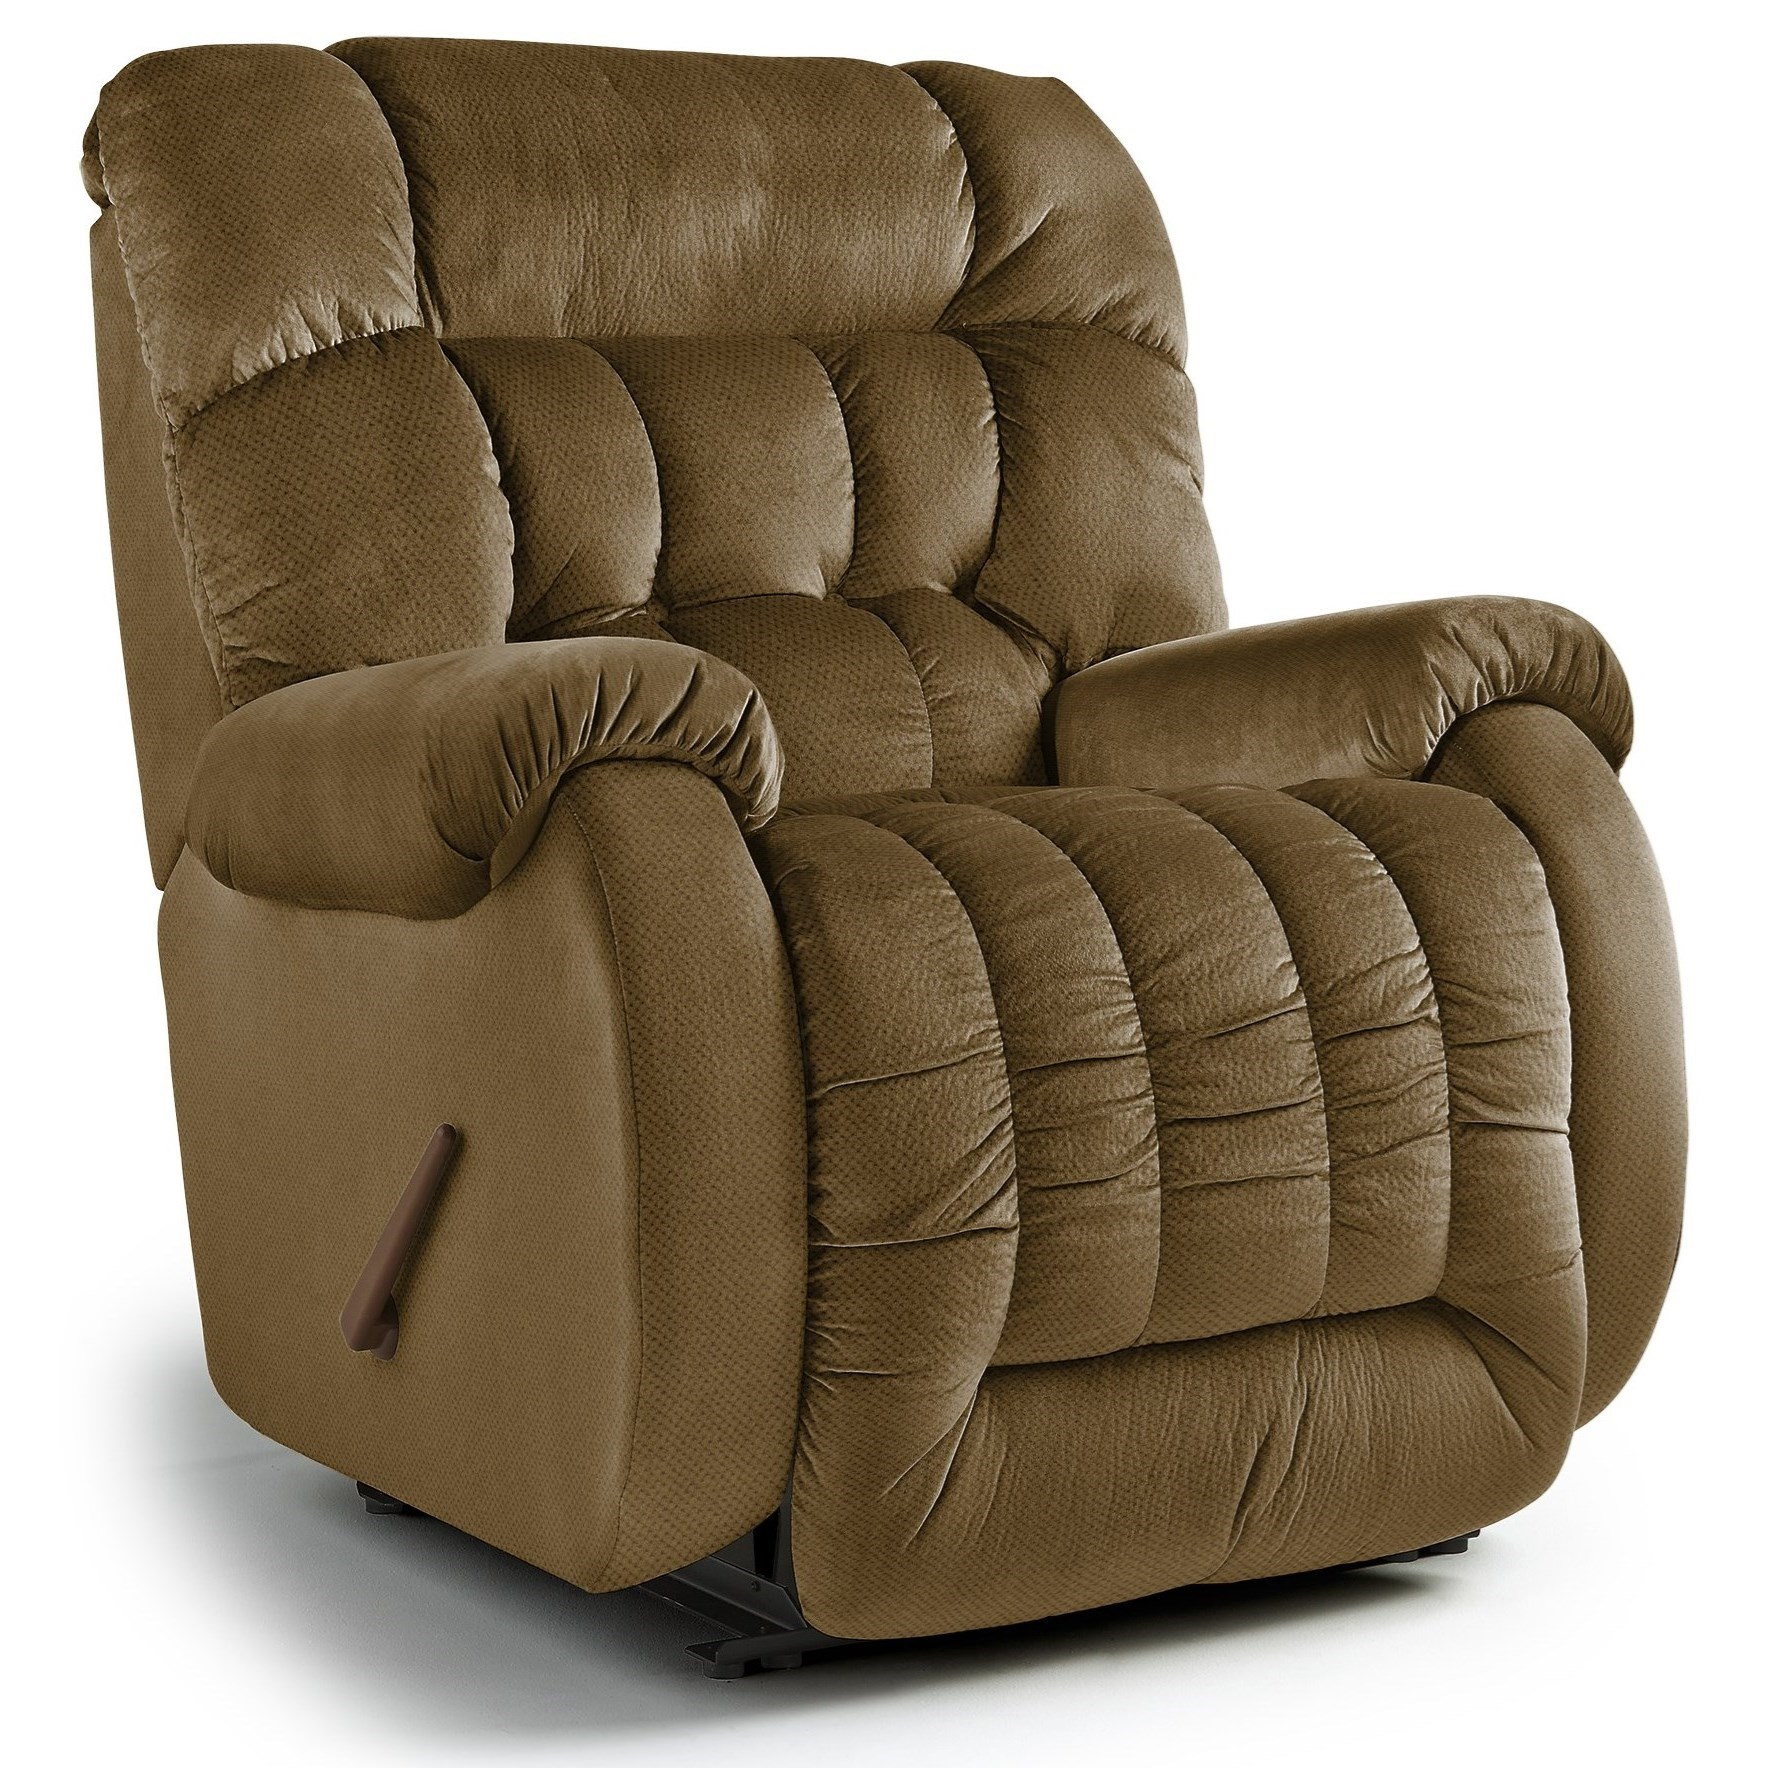 Best Home Furnishings Recliners The Beast Rake Beast Recliner